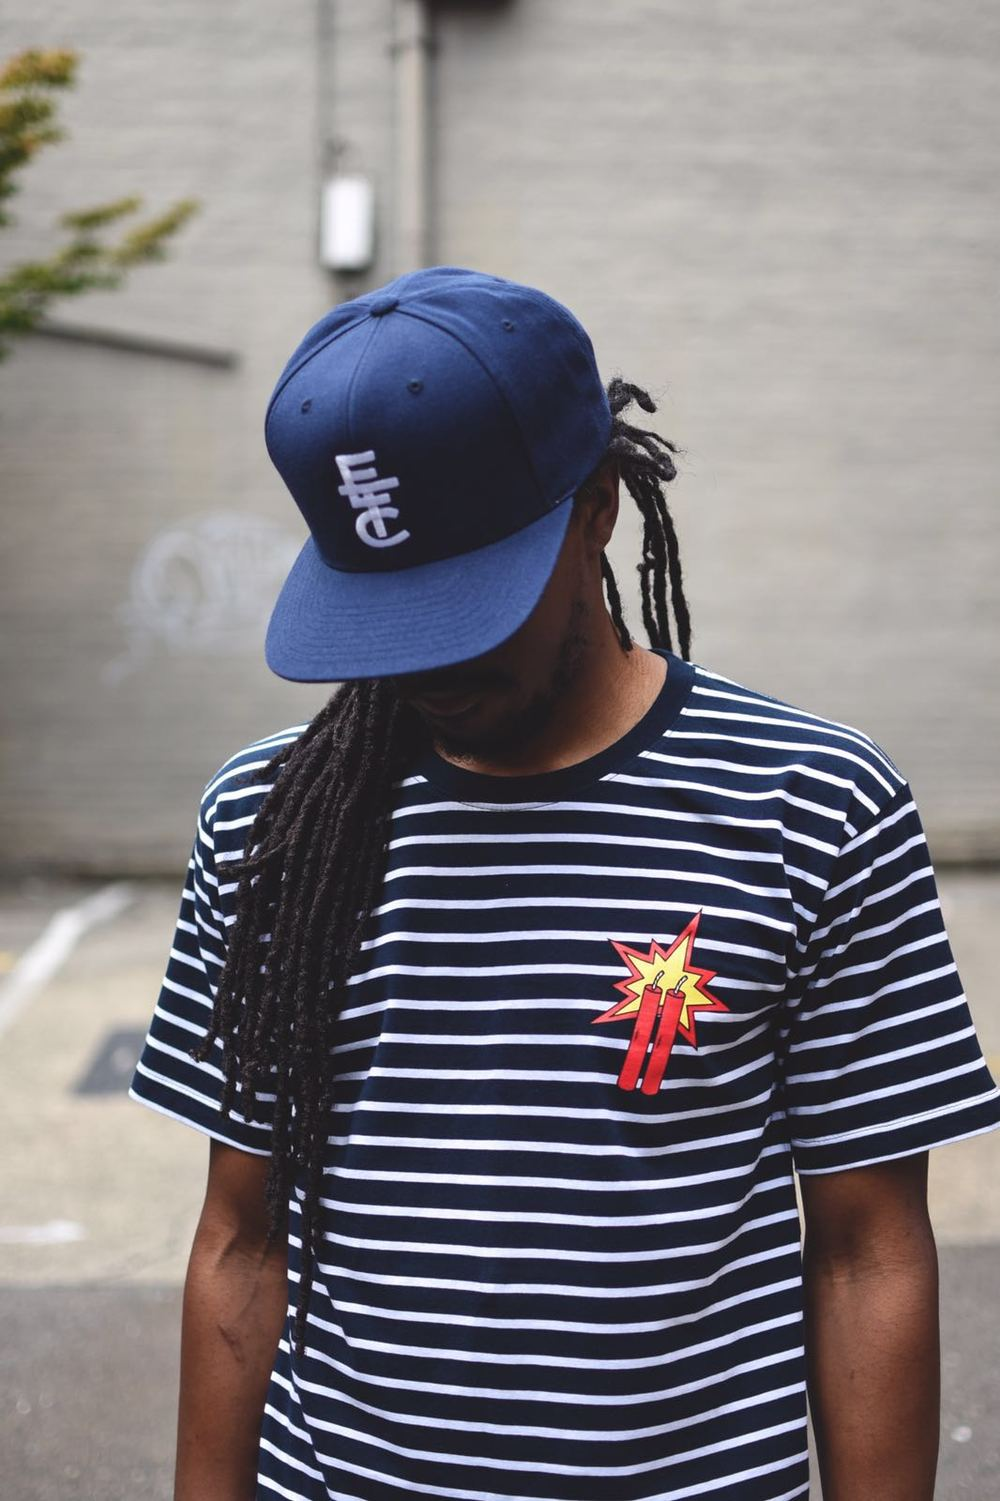 2 YEAR DYNAMITE T (STRIPED NAVY/WHT) / STACKED ETC SNAPBACK (NAVY)